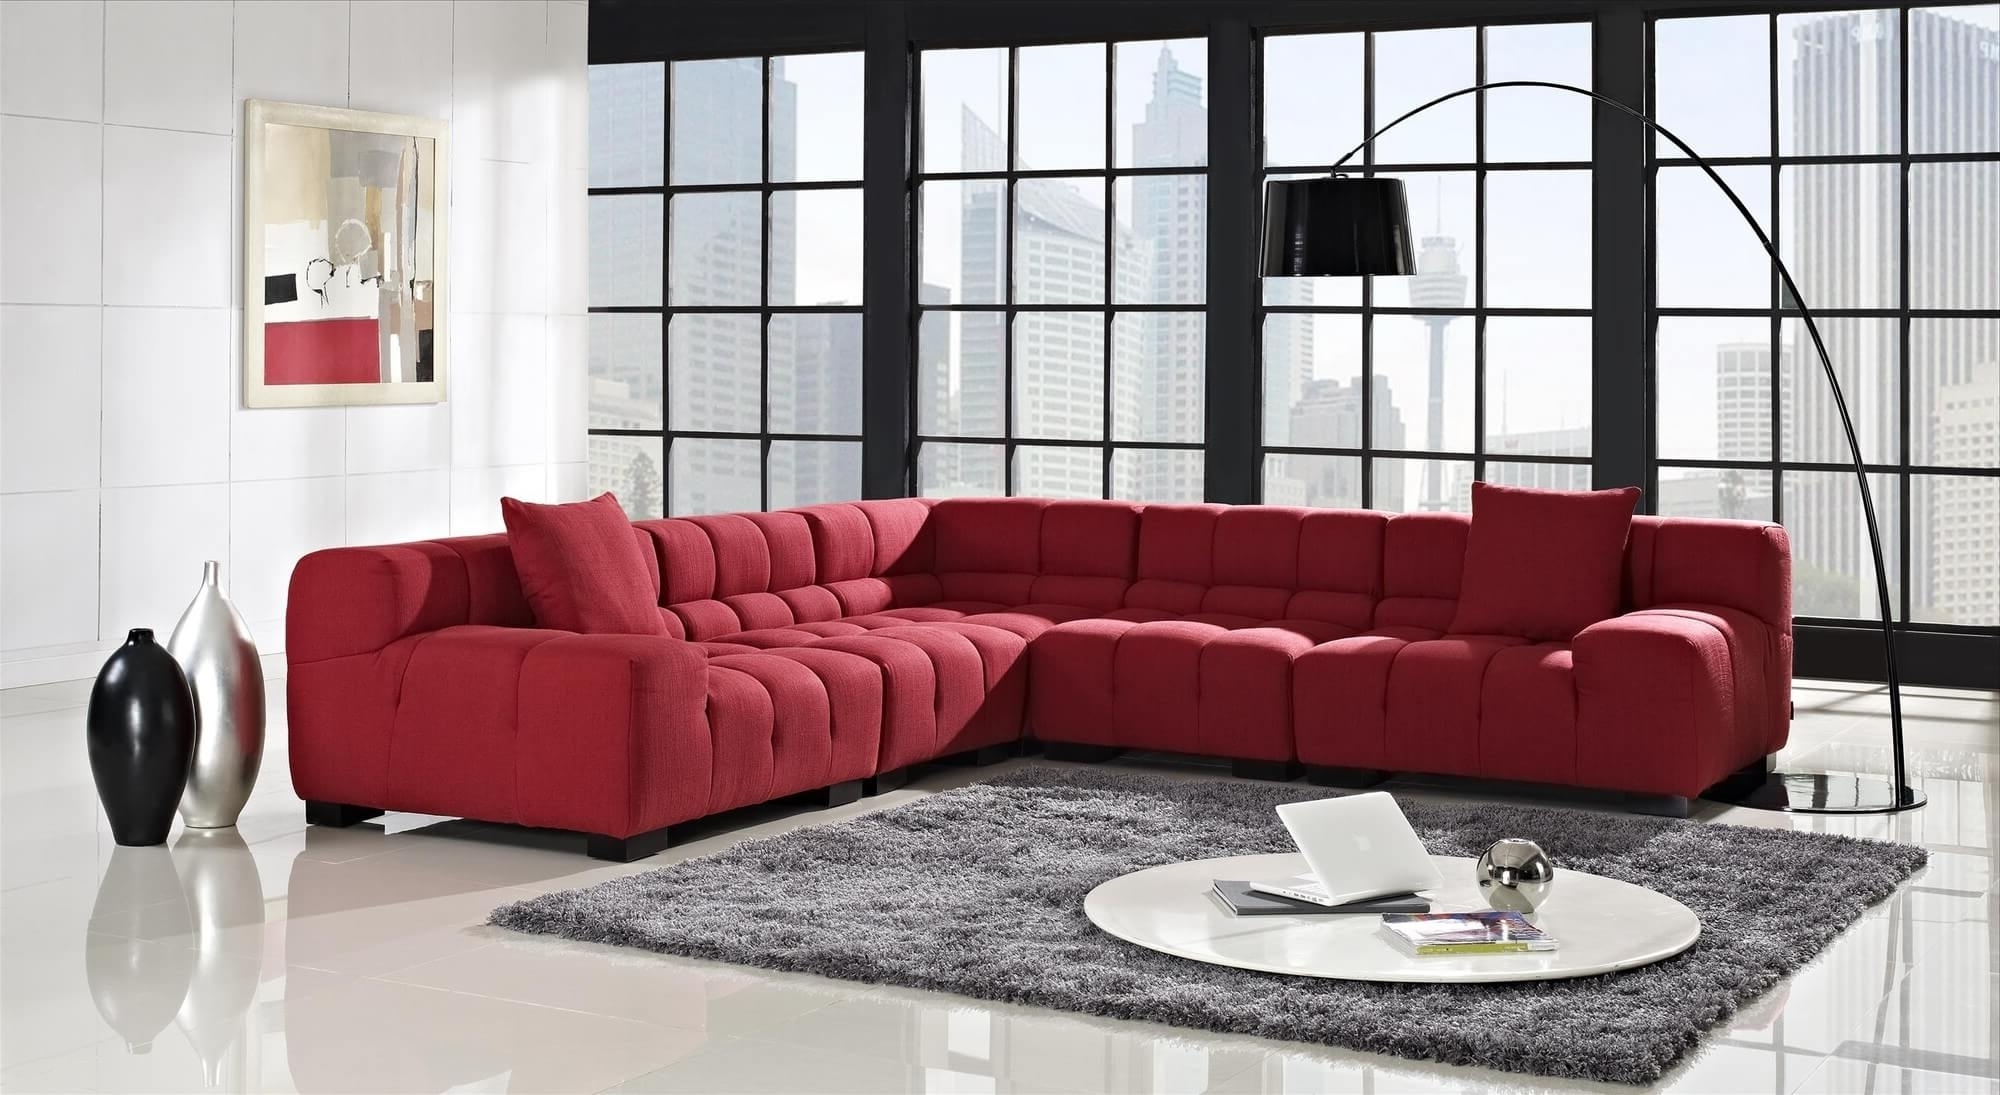 Favorite Collection Firm Sectional Sofa – Buildsimplehome With Western Style Sectional Sofas (View 14 of 15)